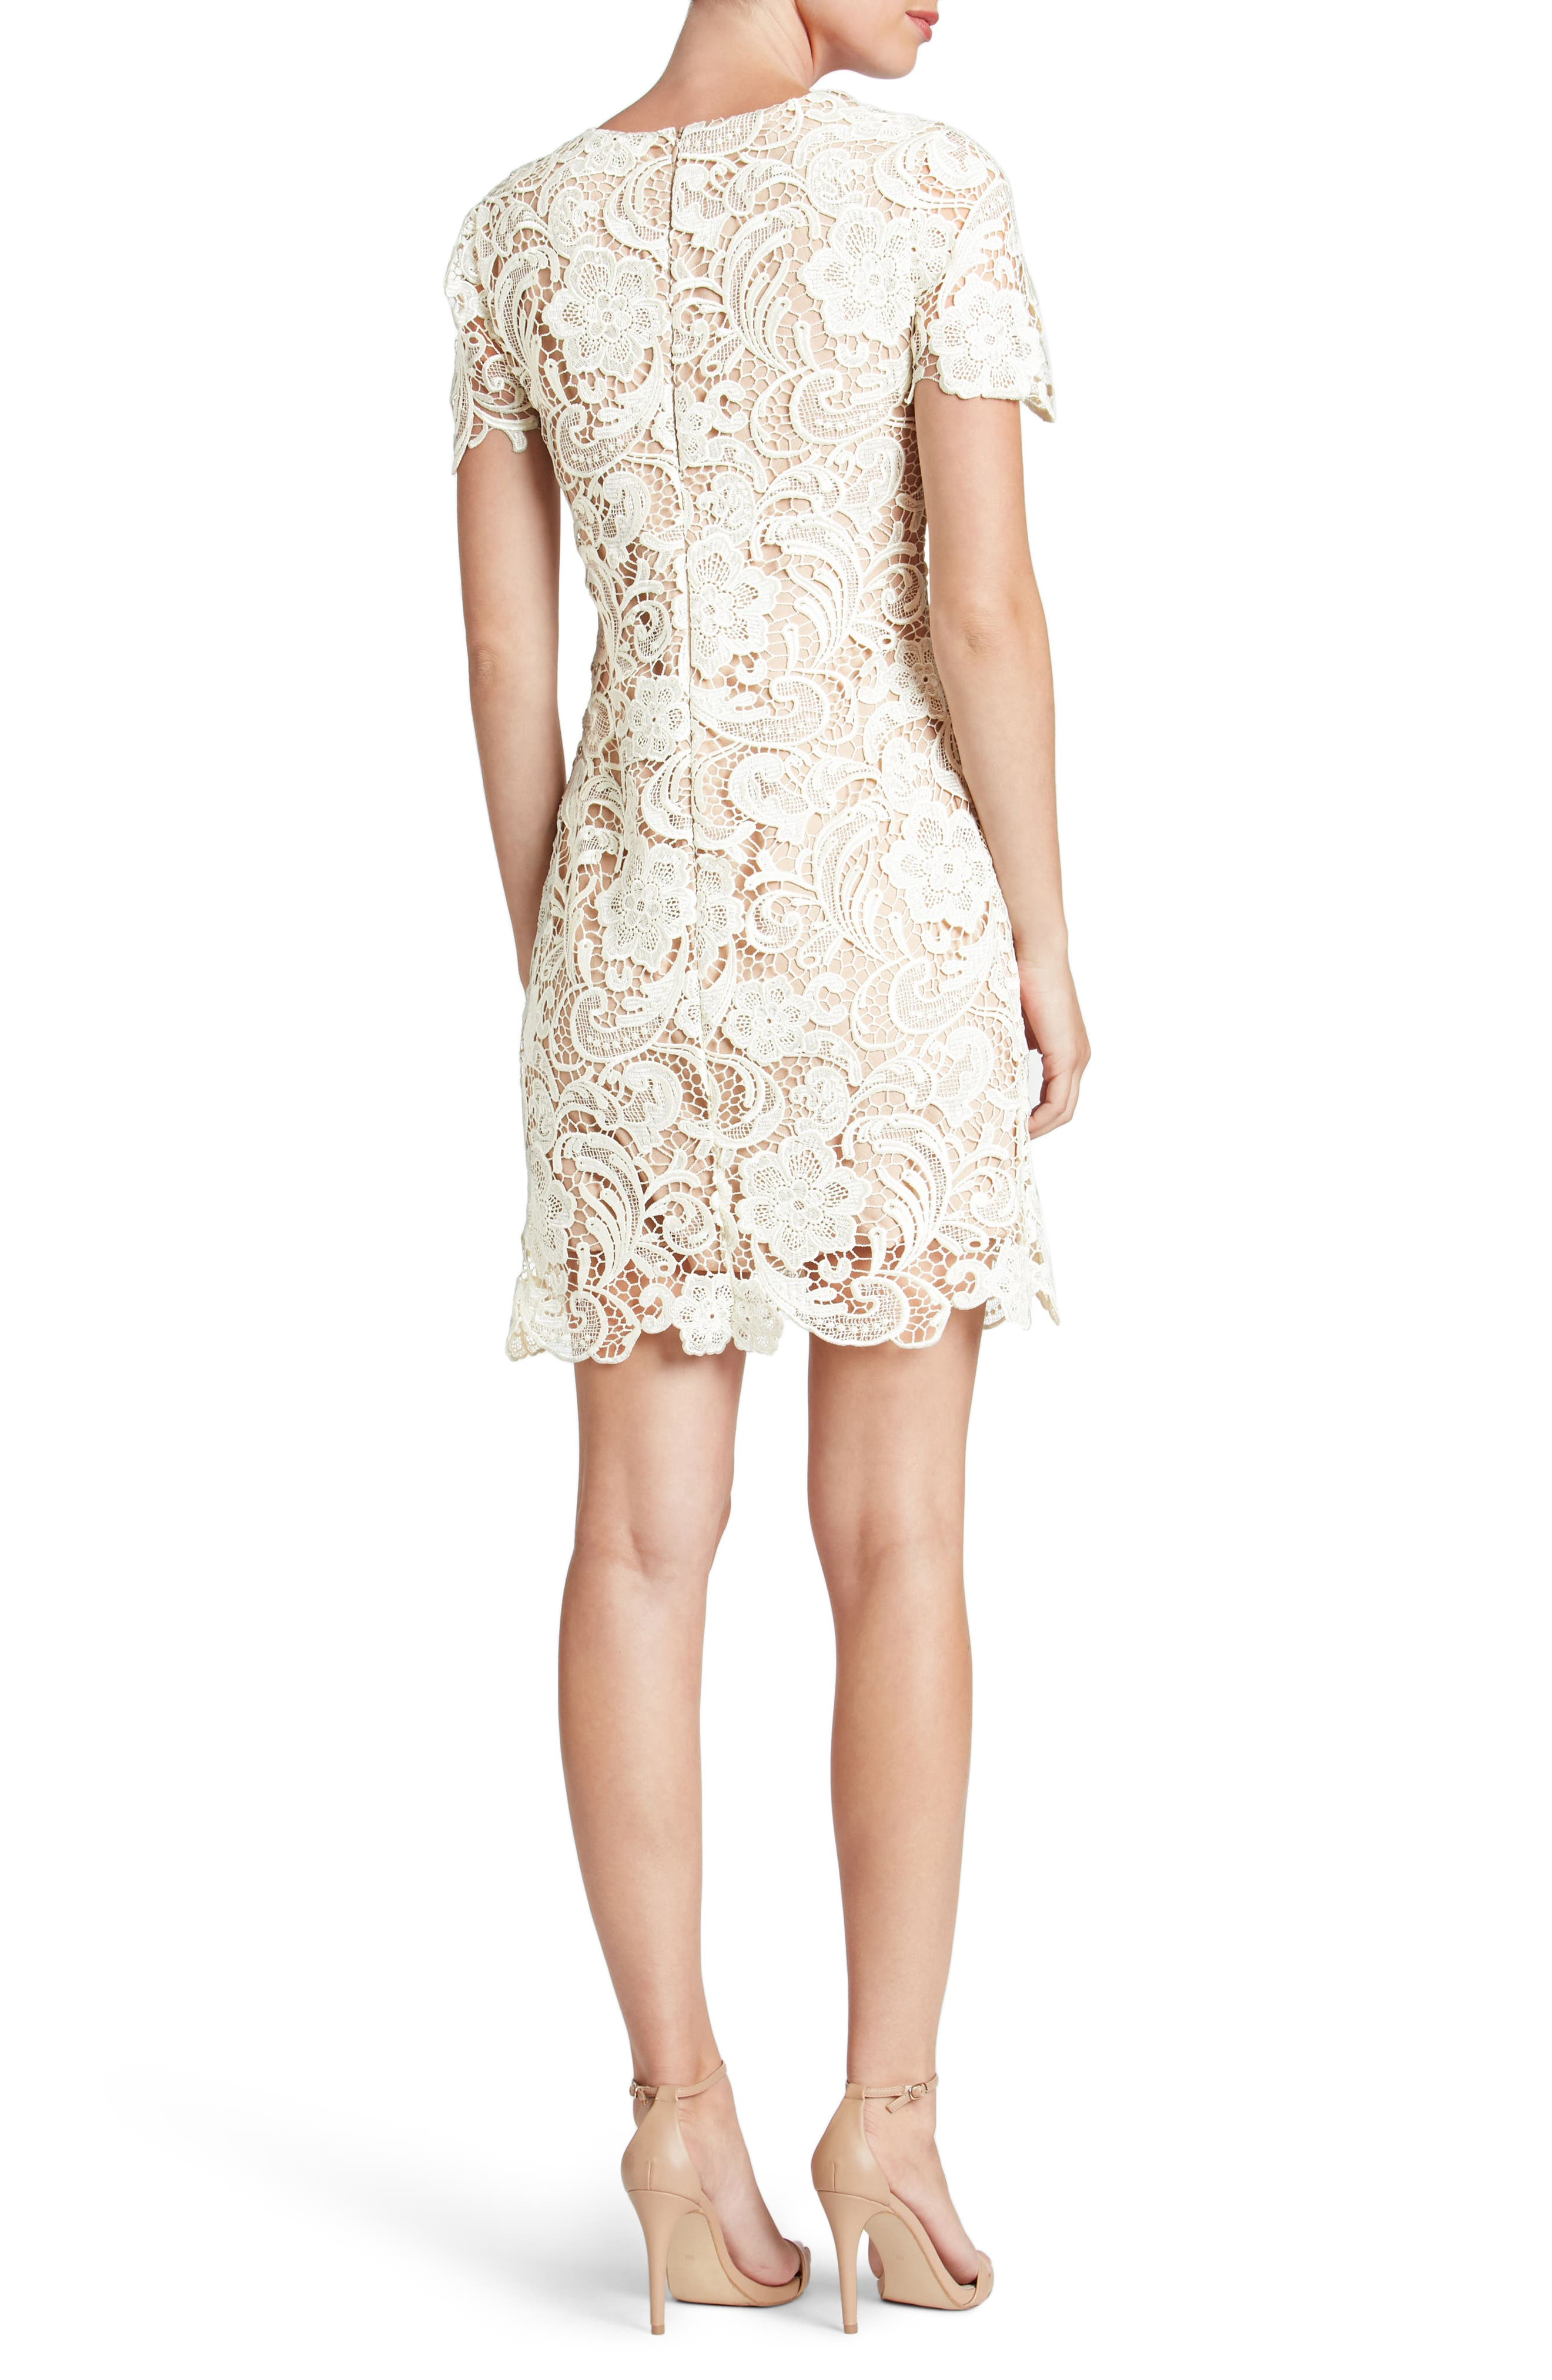 Anna Crochet Lace Sheath Dress,                             Alternate thumbnail 2, color,                             WHITE/ NUDE